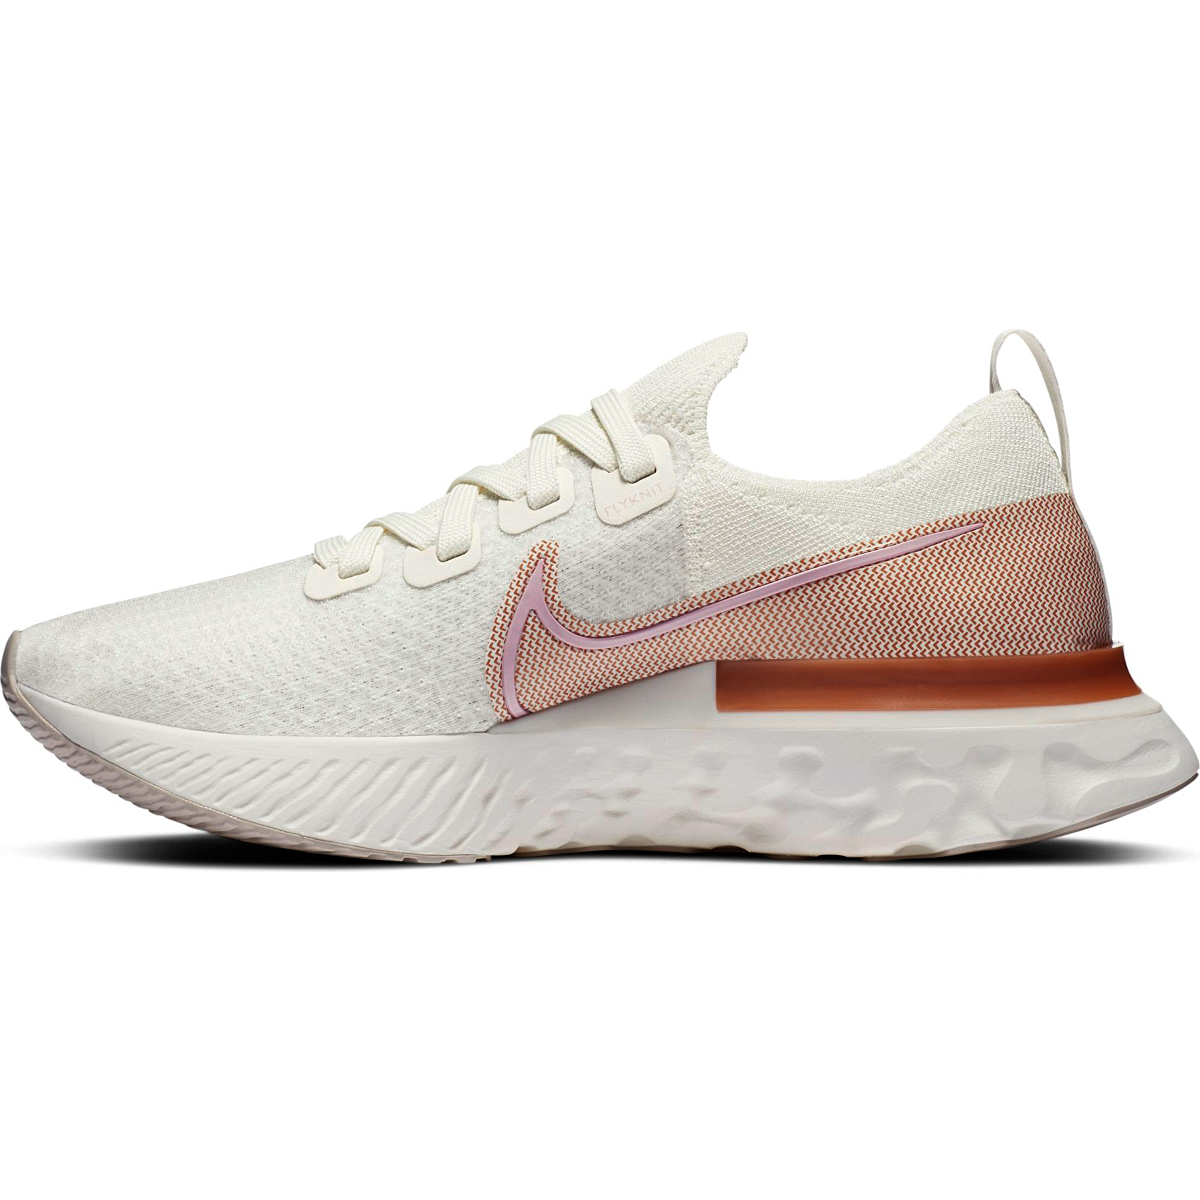 Women's Nike Nike React Infinity Run Flyknit Running Shoe - Color: Sail/Metallic Copper/White/Light Arctic Pink - Size: 5 - Width: Regular, Sail/Metallic Copper/White/Light Arctic Pink, large, image 2